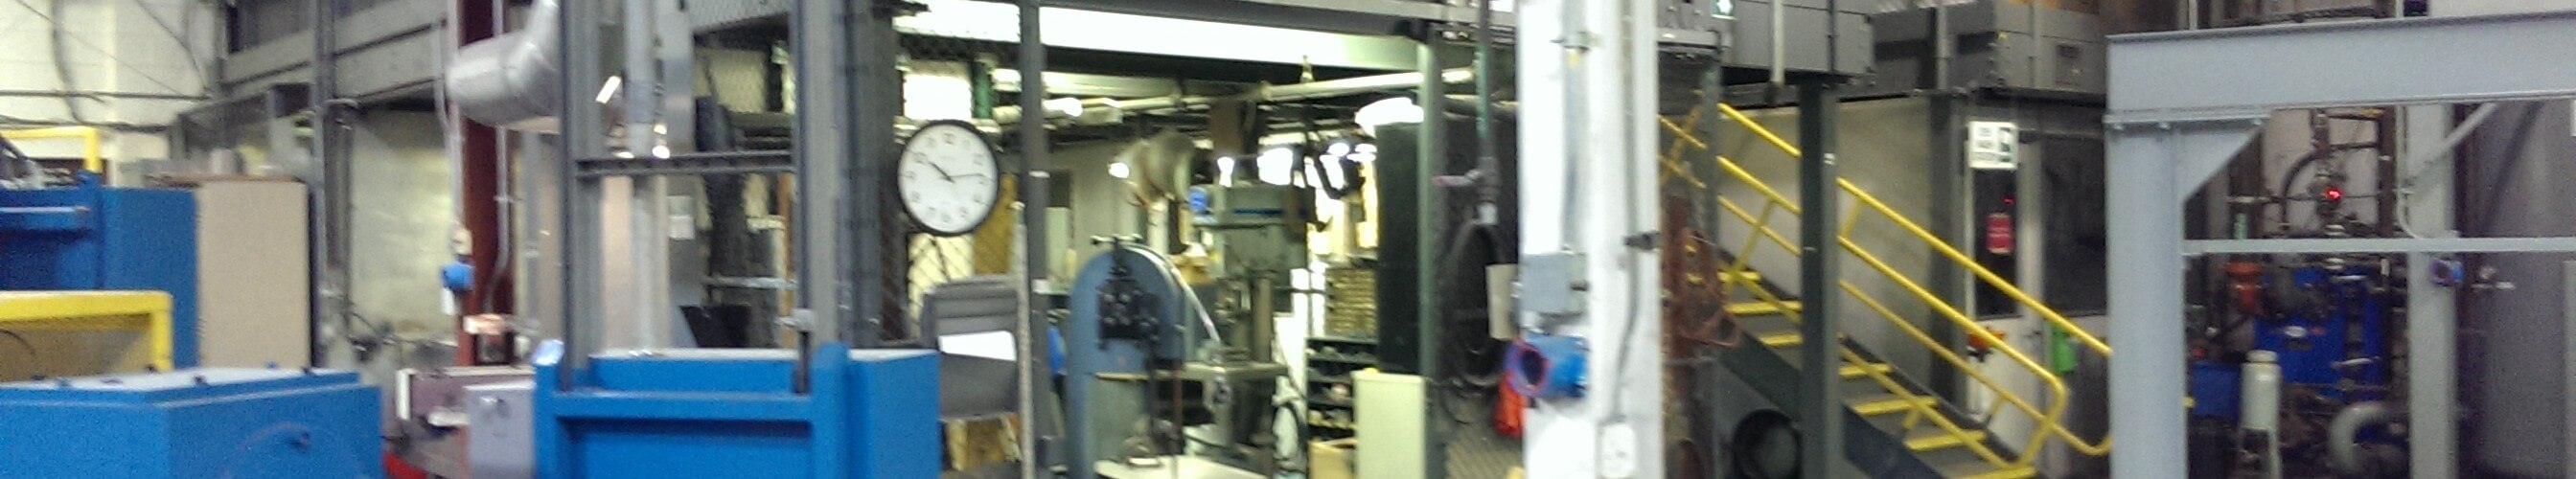 phot of machinery for metal alloys at Eutectix